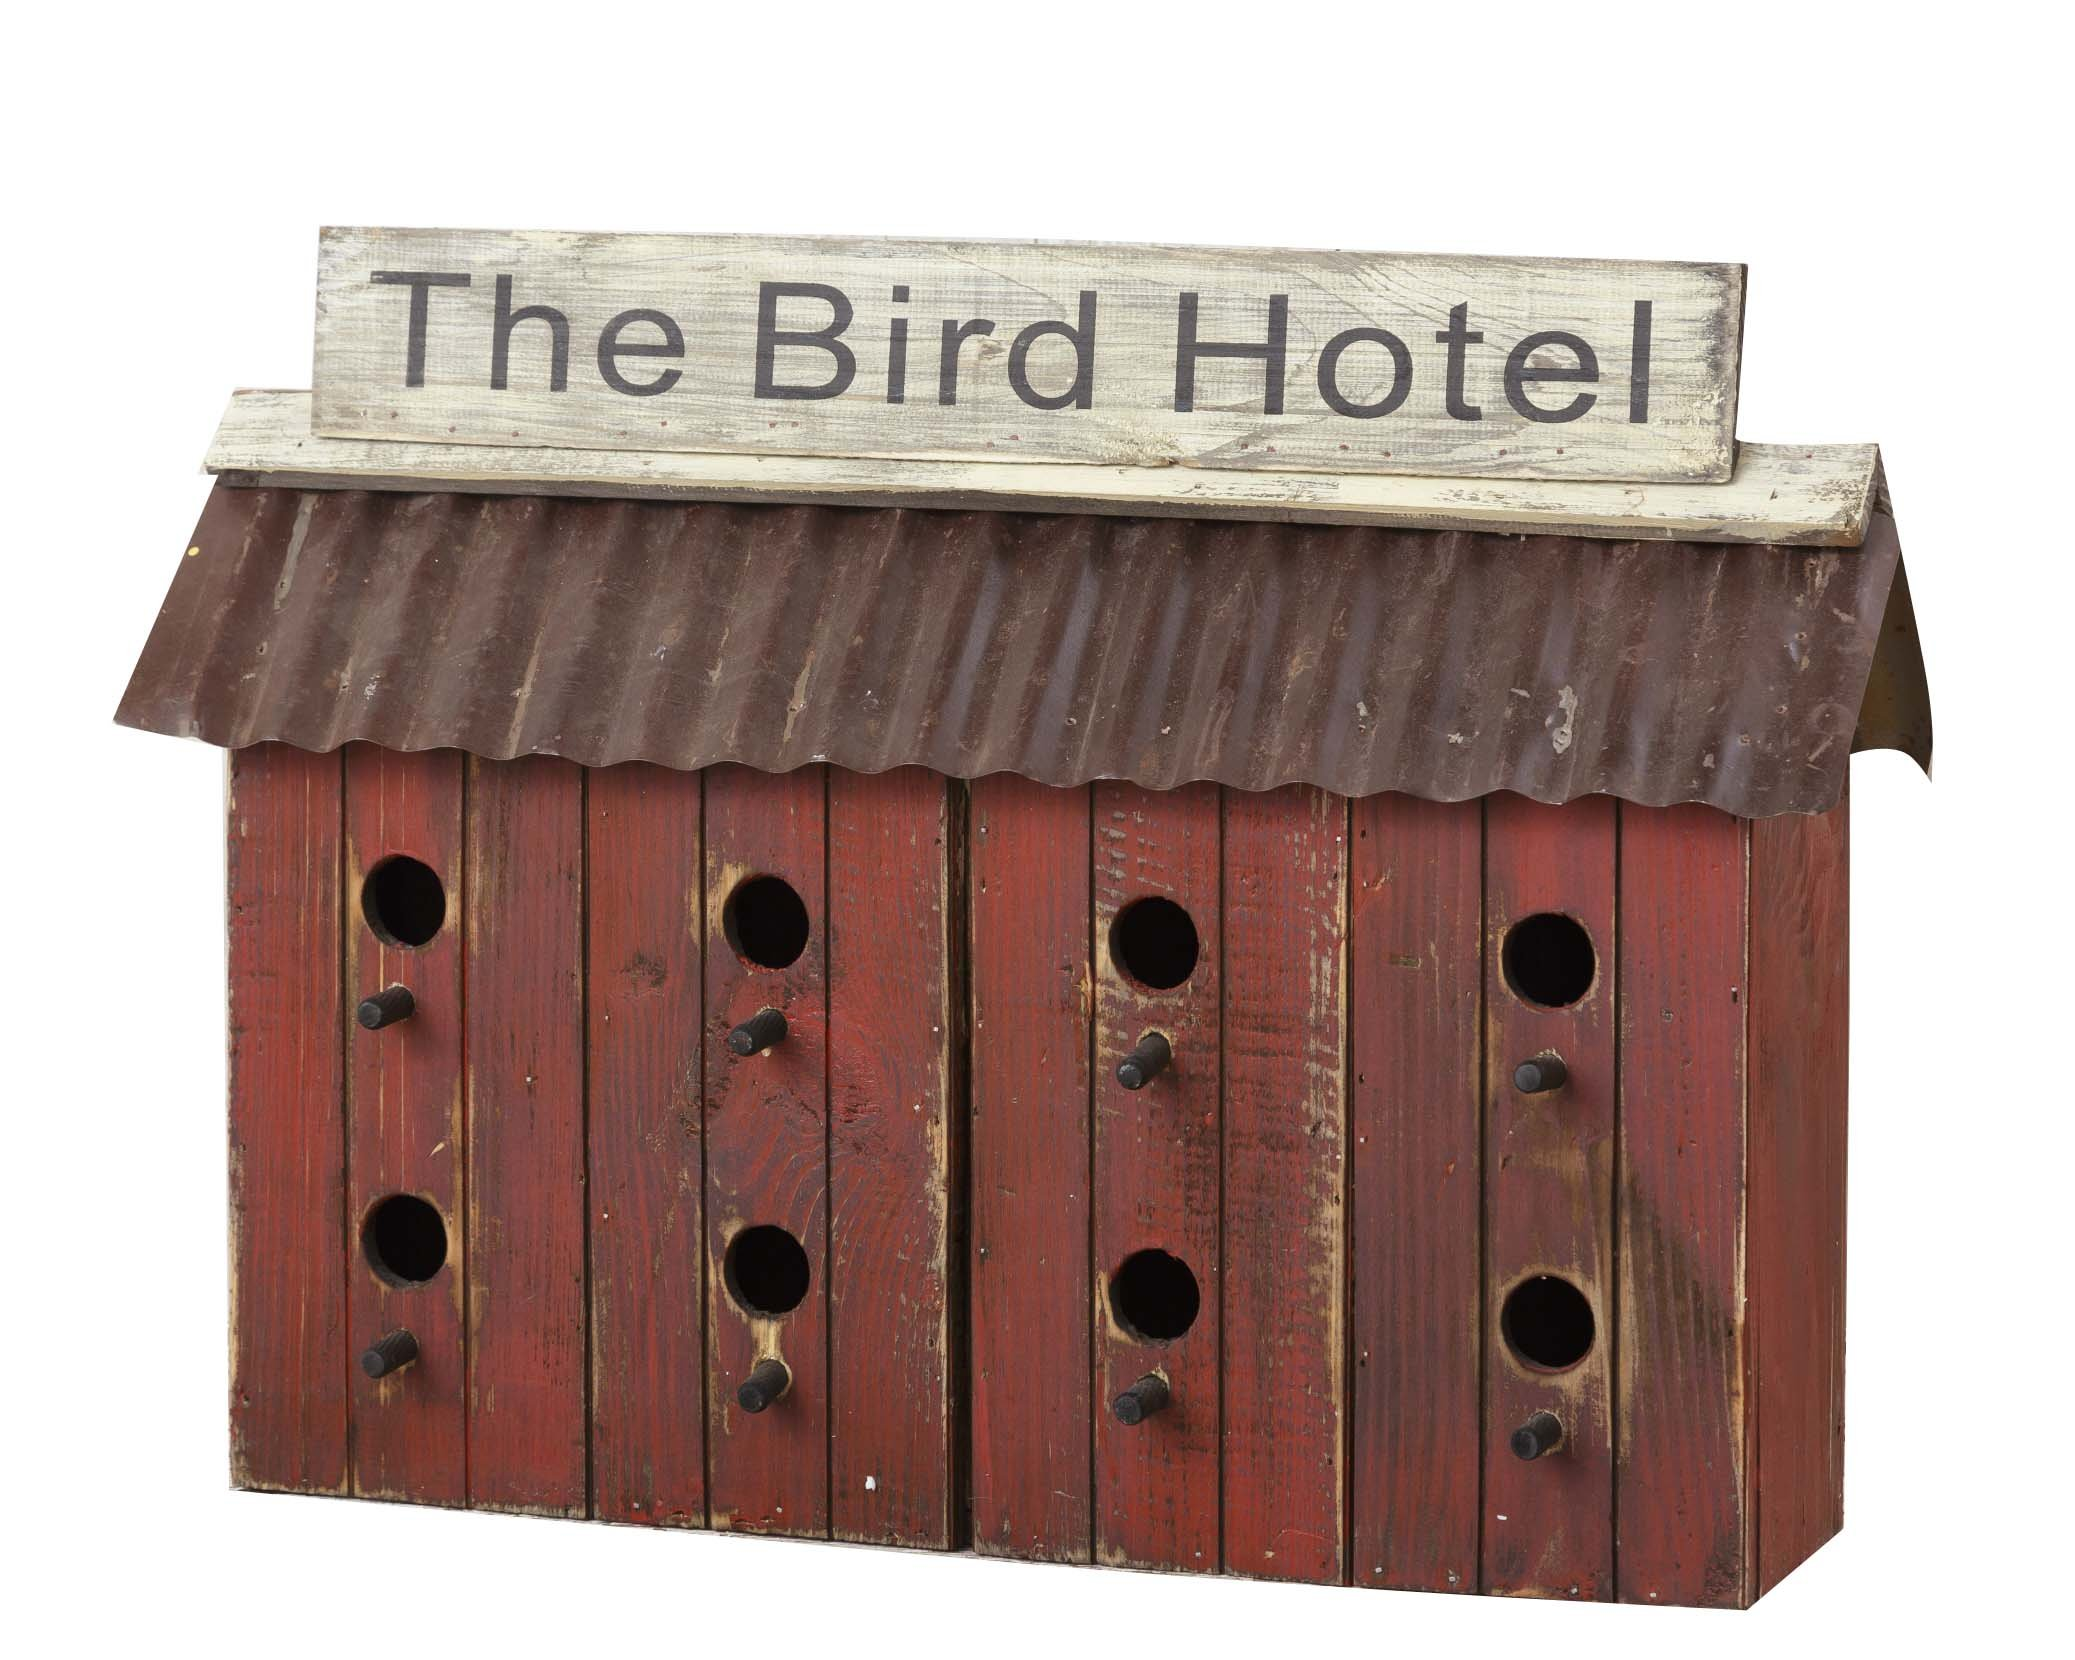 Your Heart's Delight 21'' x 6.5'' x 15'' the Bird Hotel with Eight Cleanout Holes Tabletop Decoration